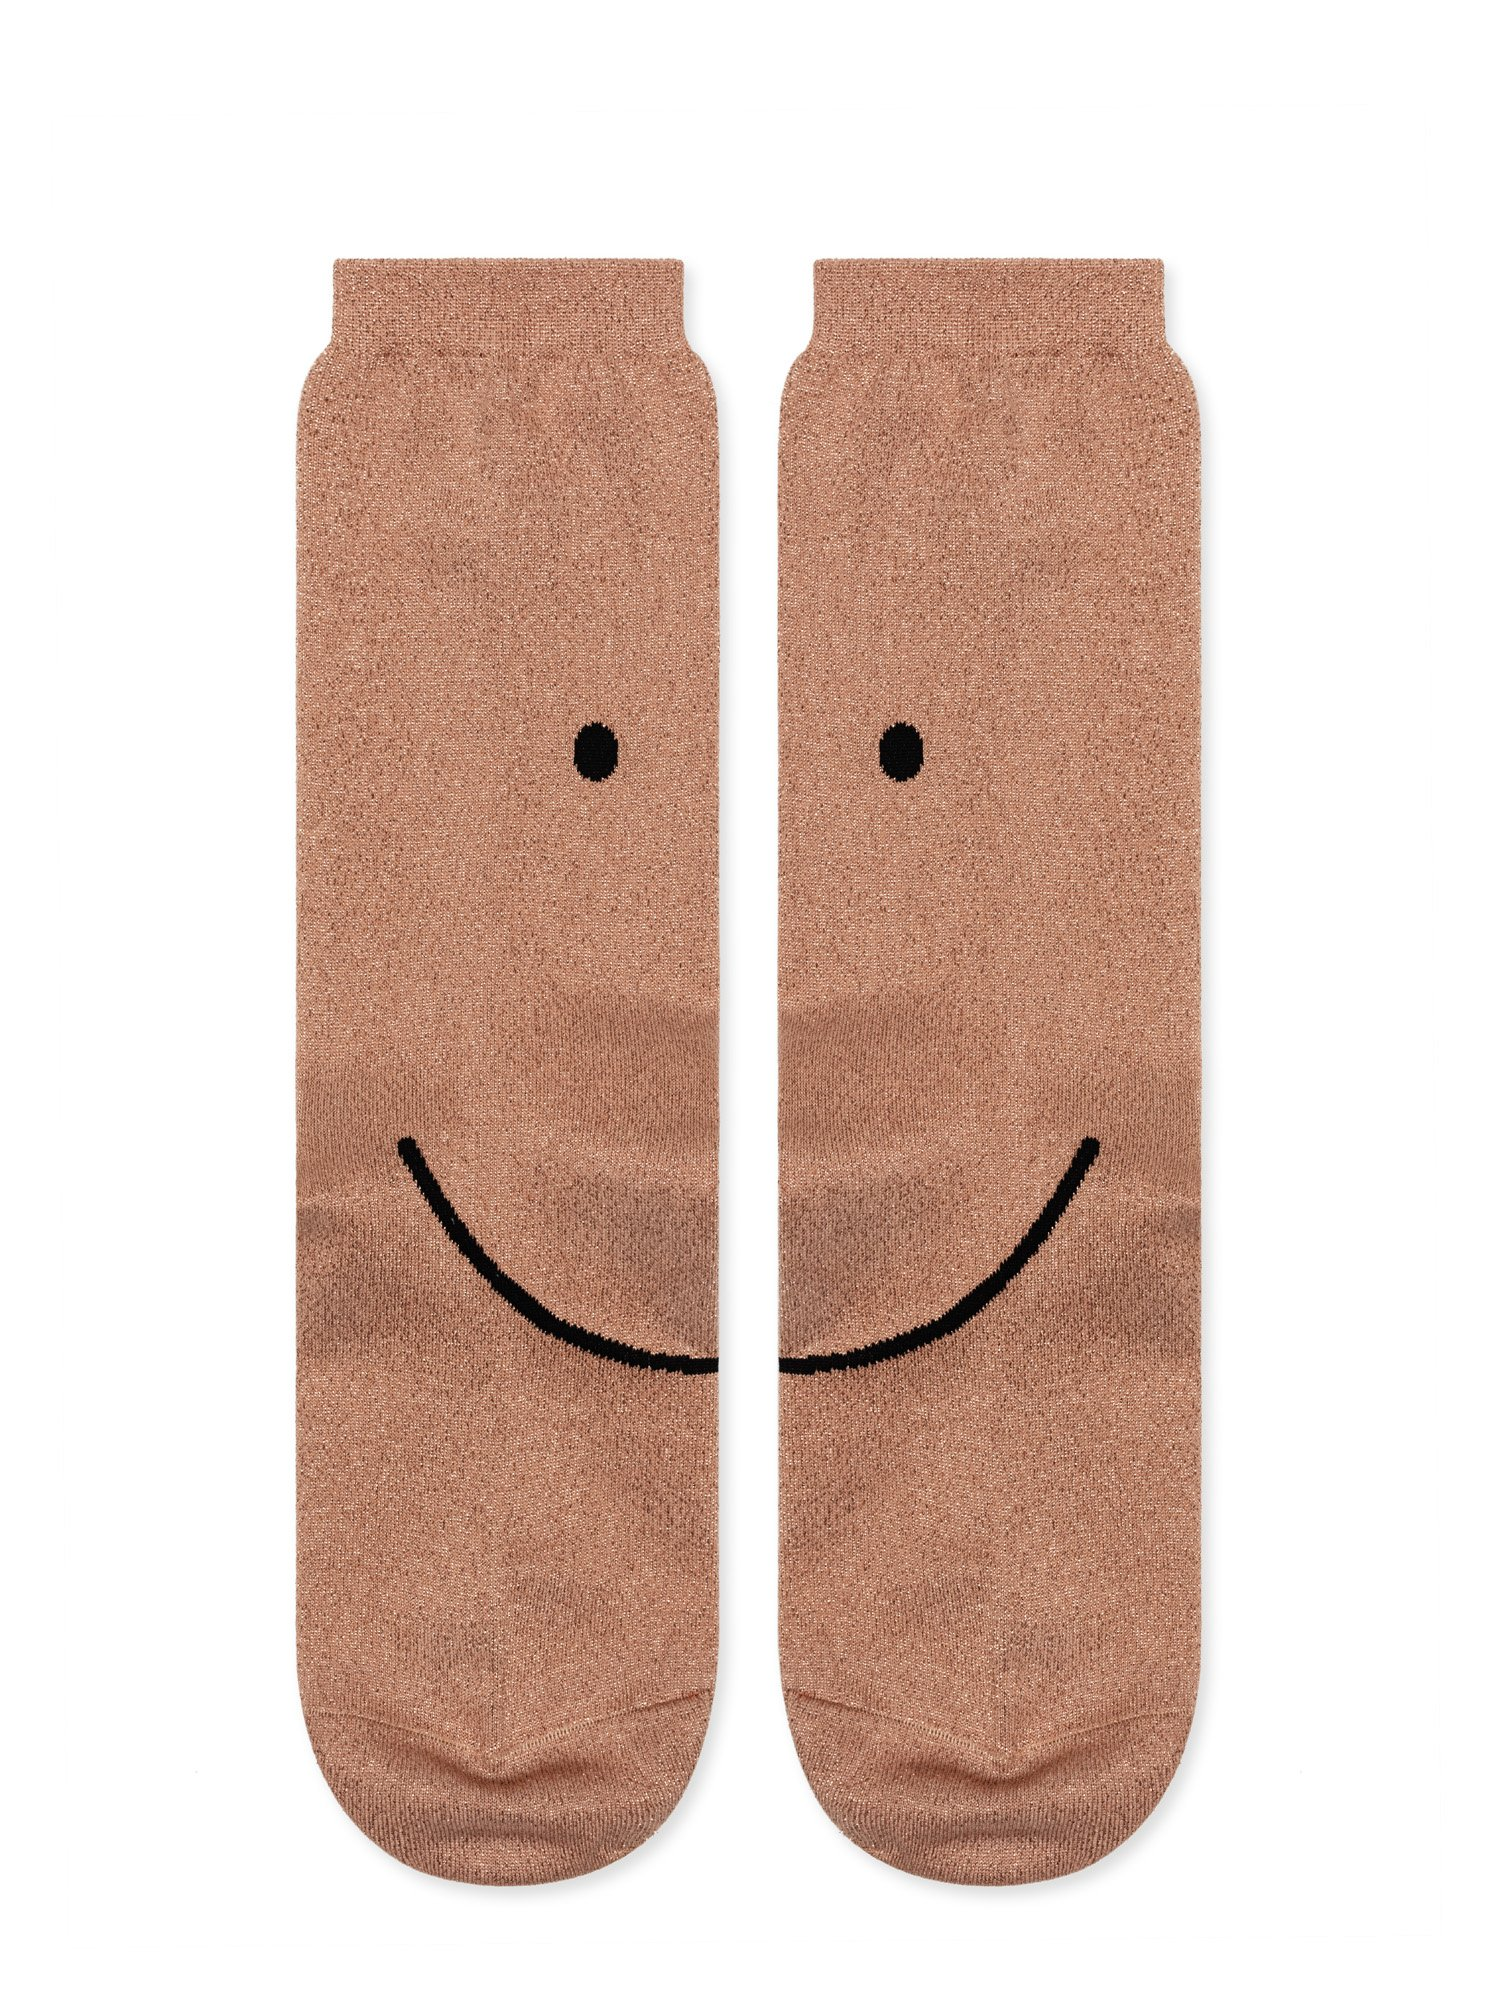 Smiley metallic crew socks by  Hansel from Basel .